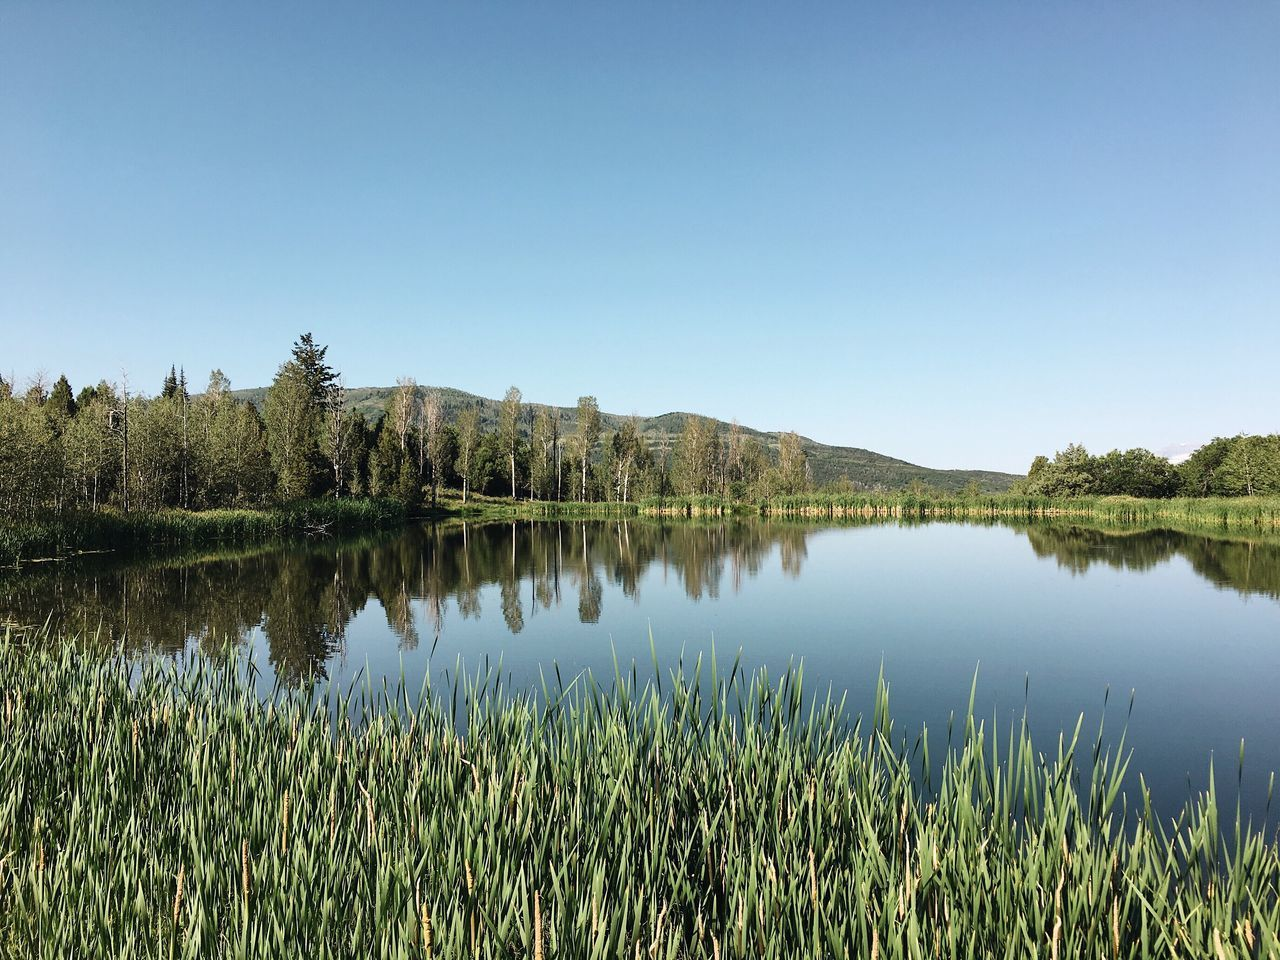 nature, reflection, grass, lake, tranquility, growth, tranquil scene, no people, beauty in nature, outdoors, water, clear sky, scenics, day, tree, sky